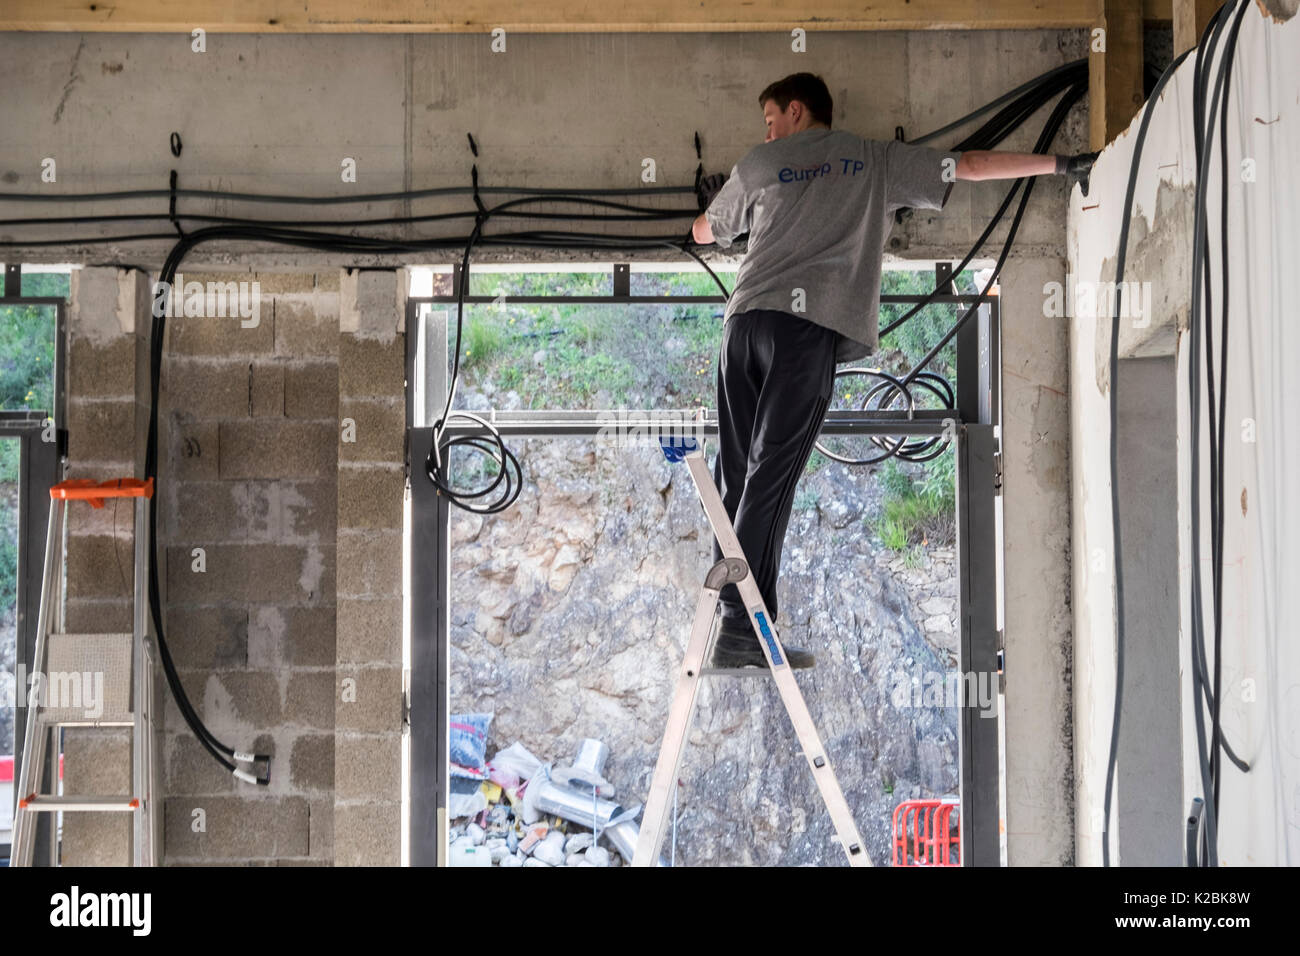 New Electrical Wiring In House Stock Photos Diagram France Electrician On A Ladder Works To Install Cables Home Under Construction